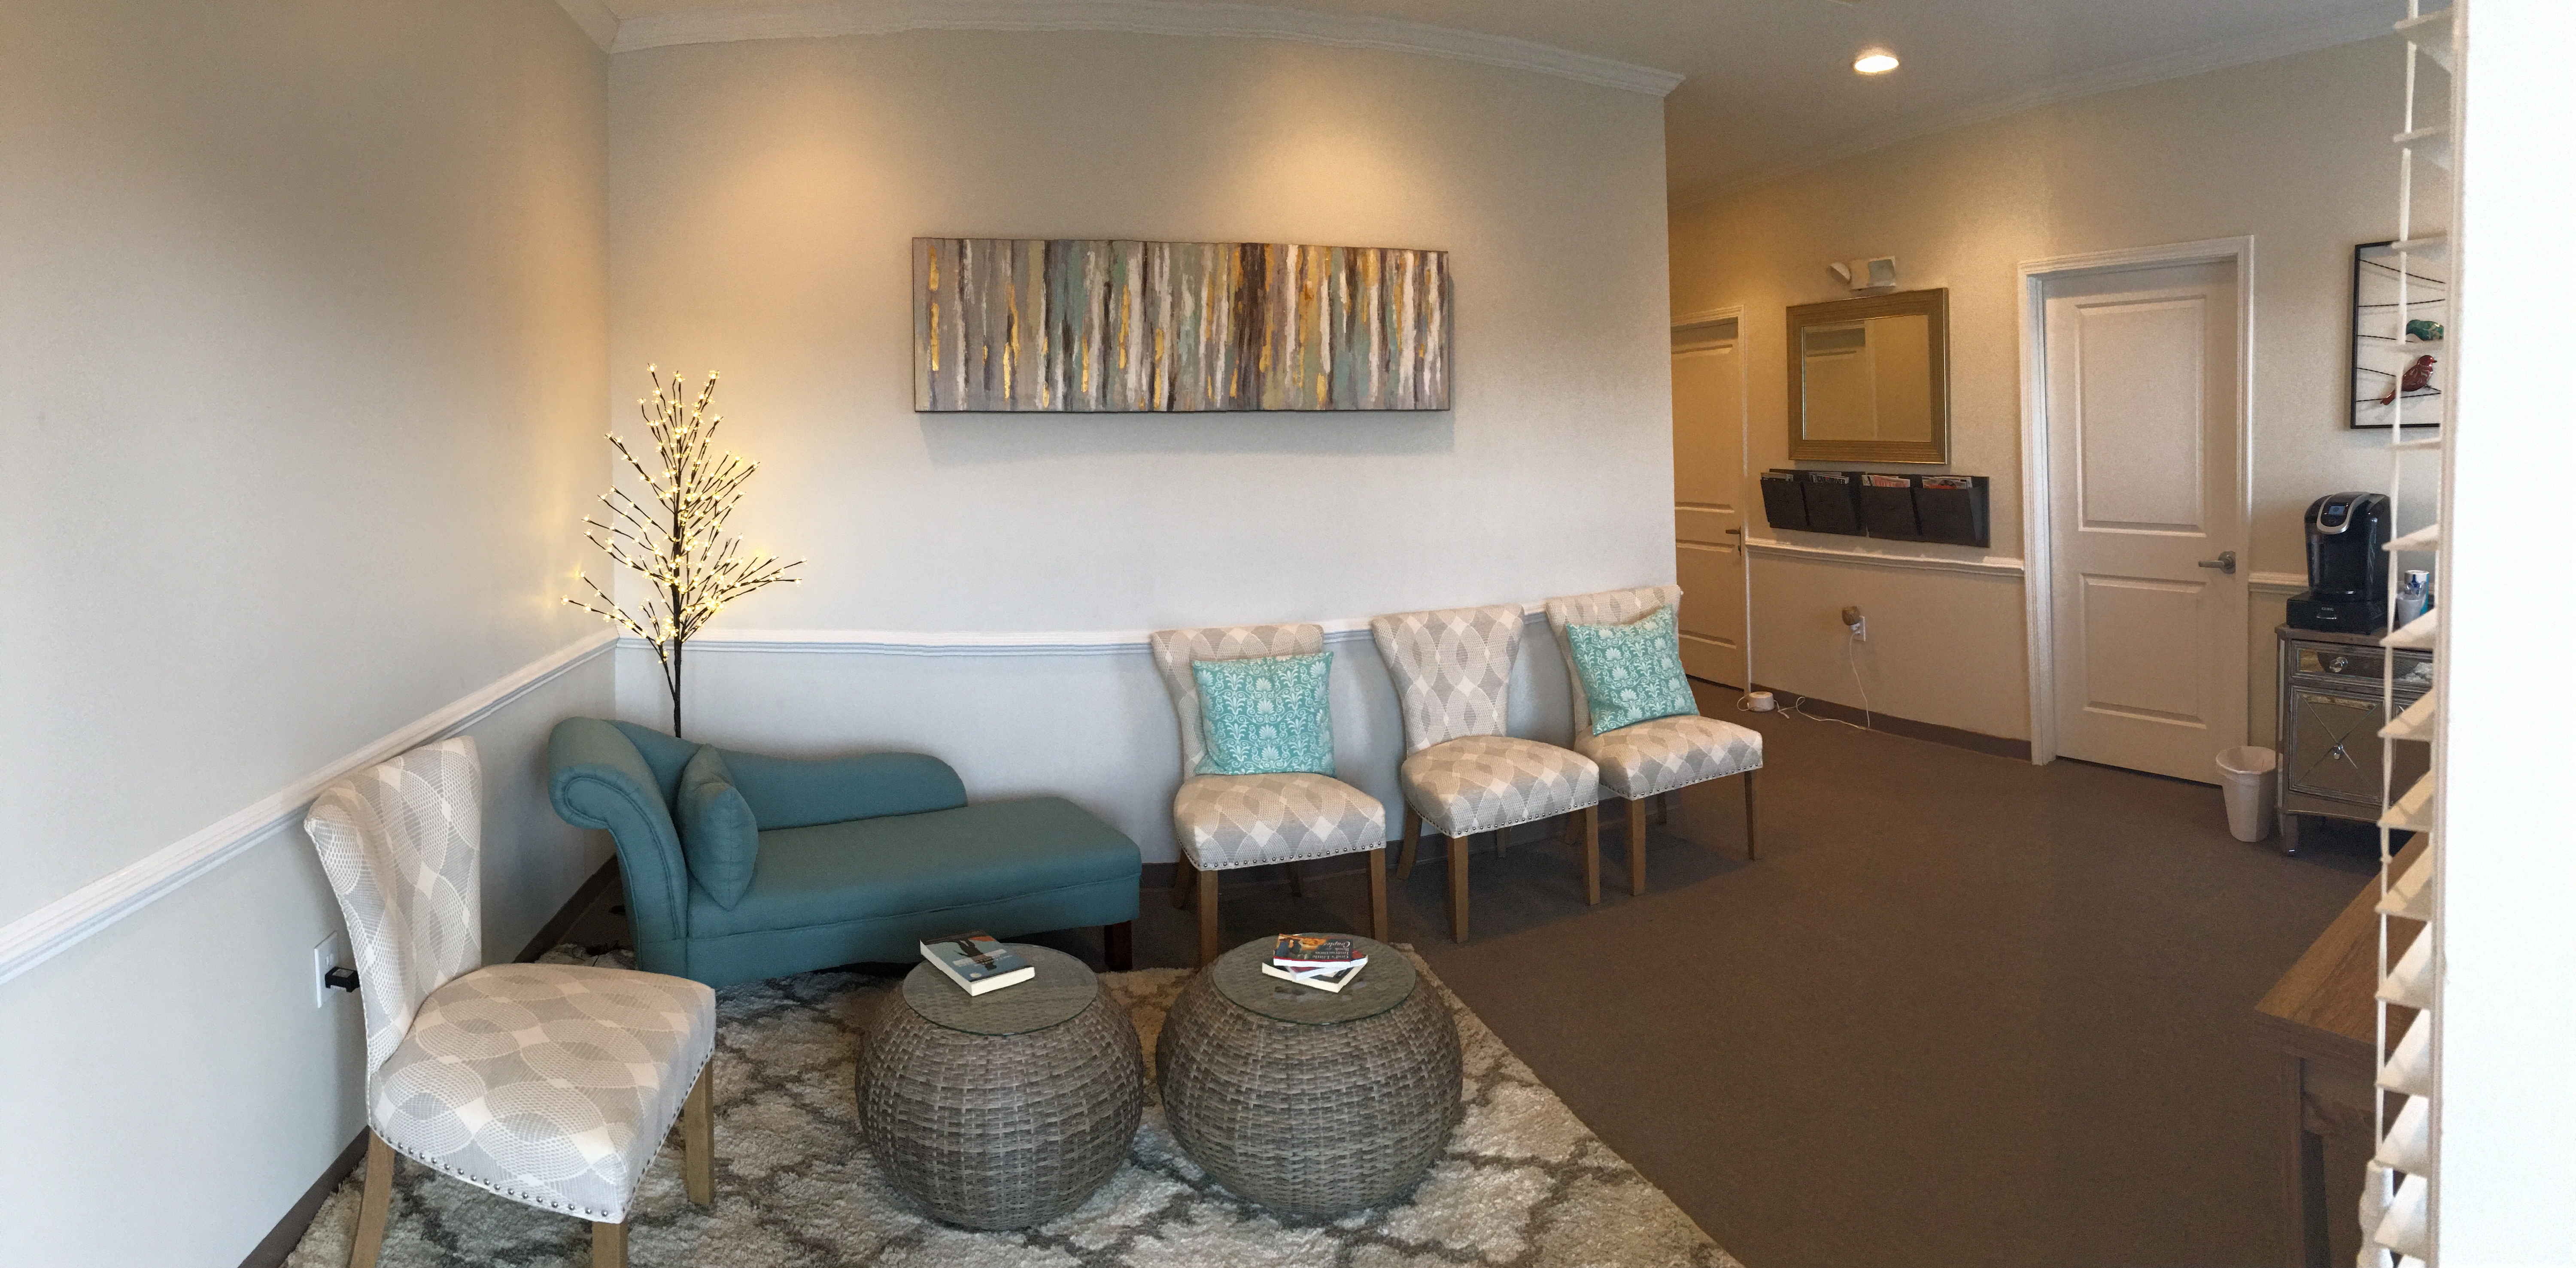 Upstate Family Therapy Lobby